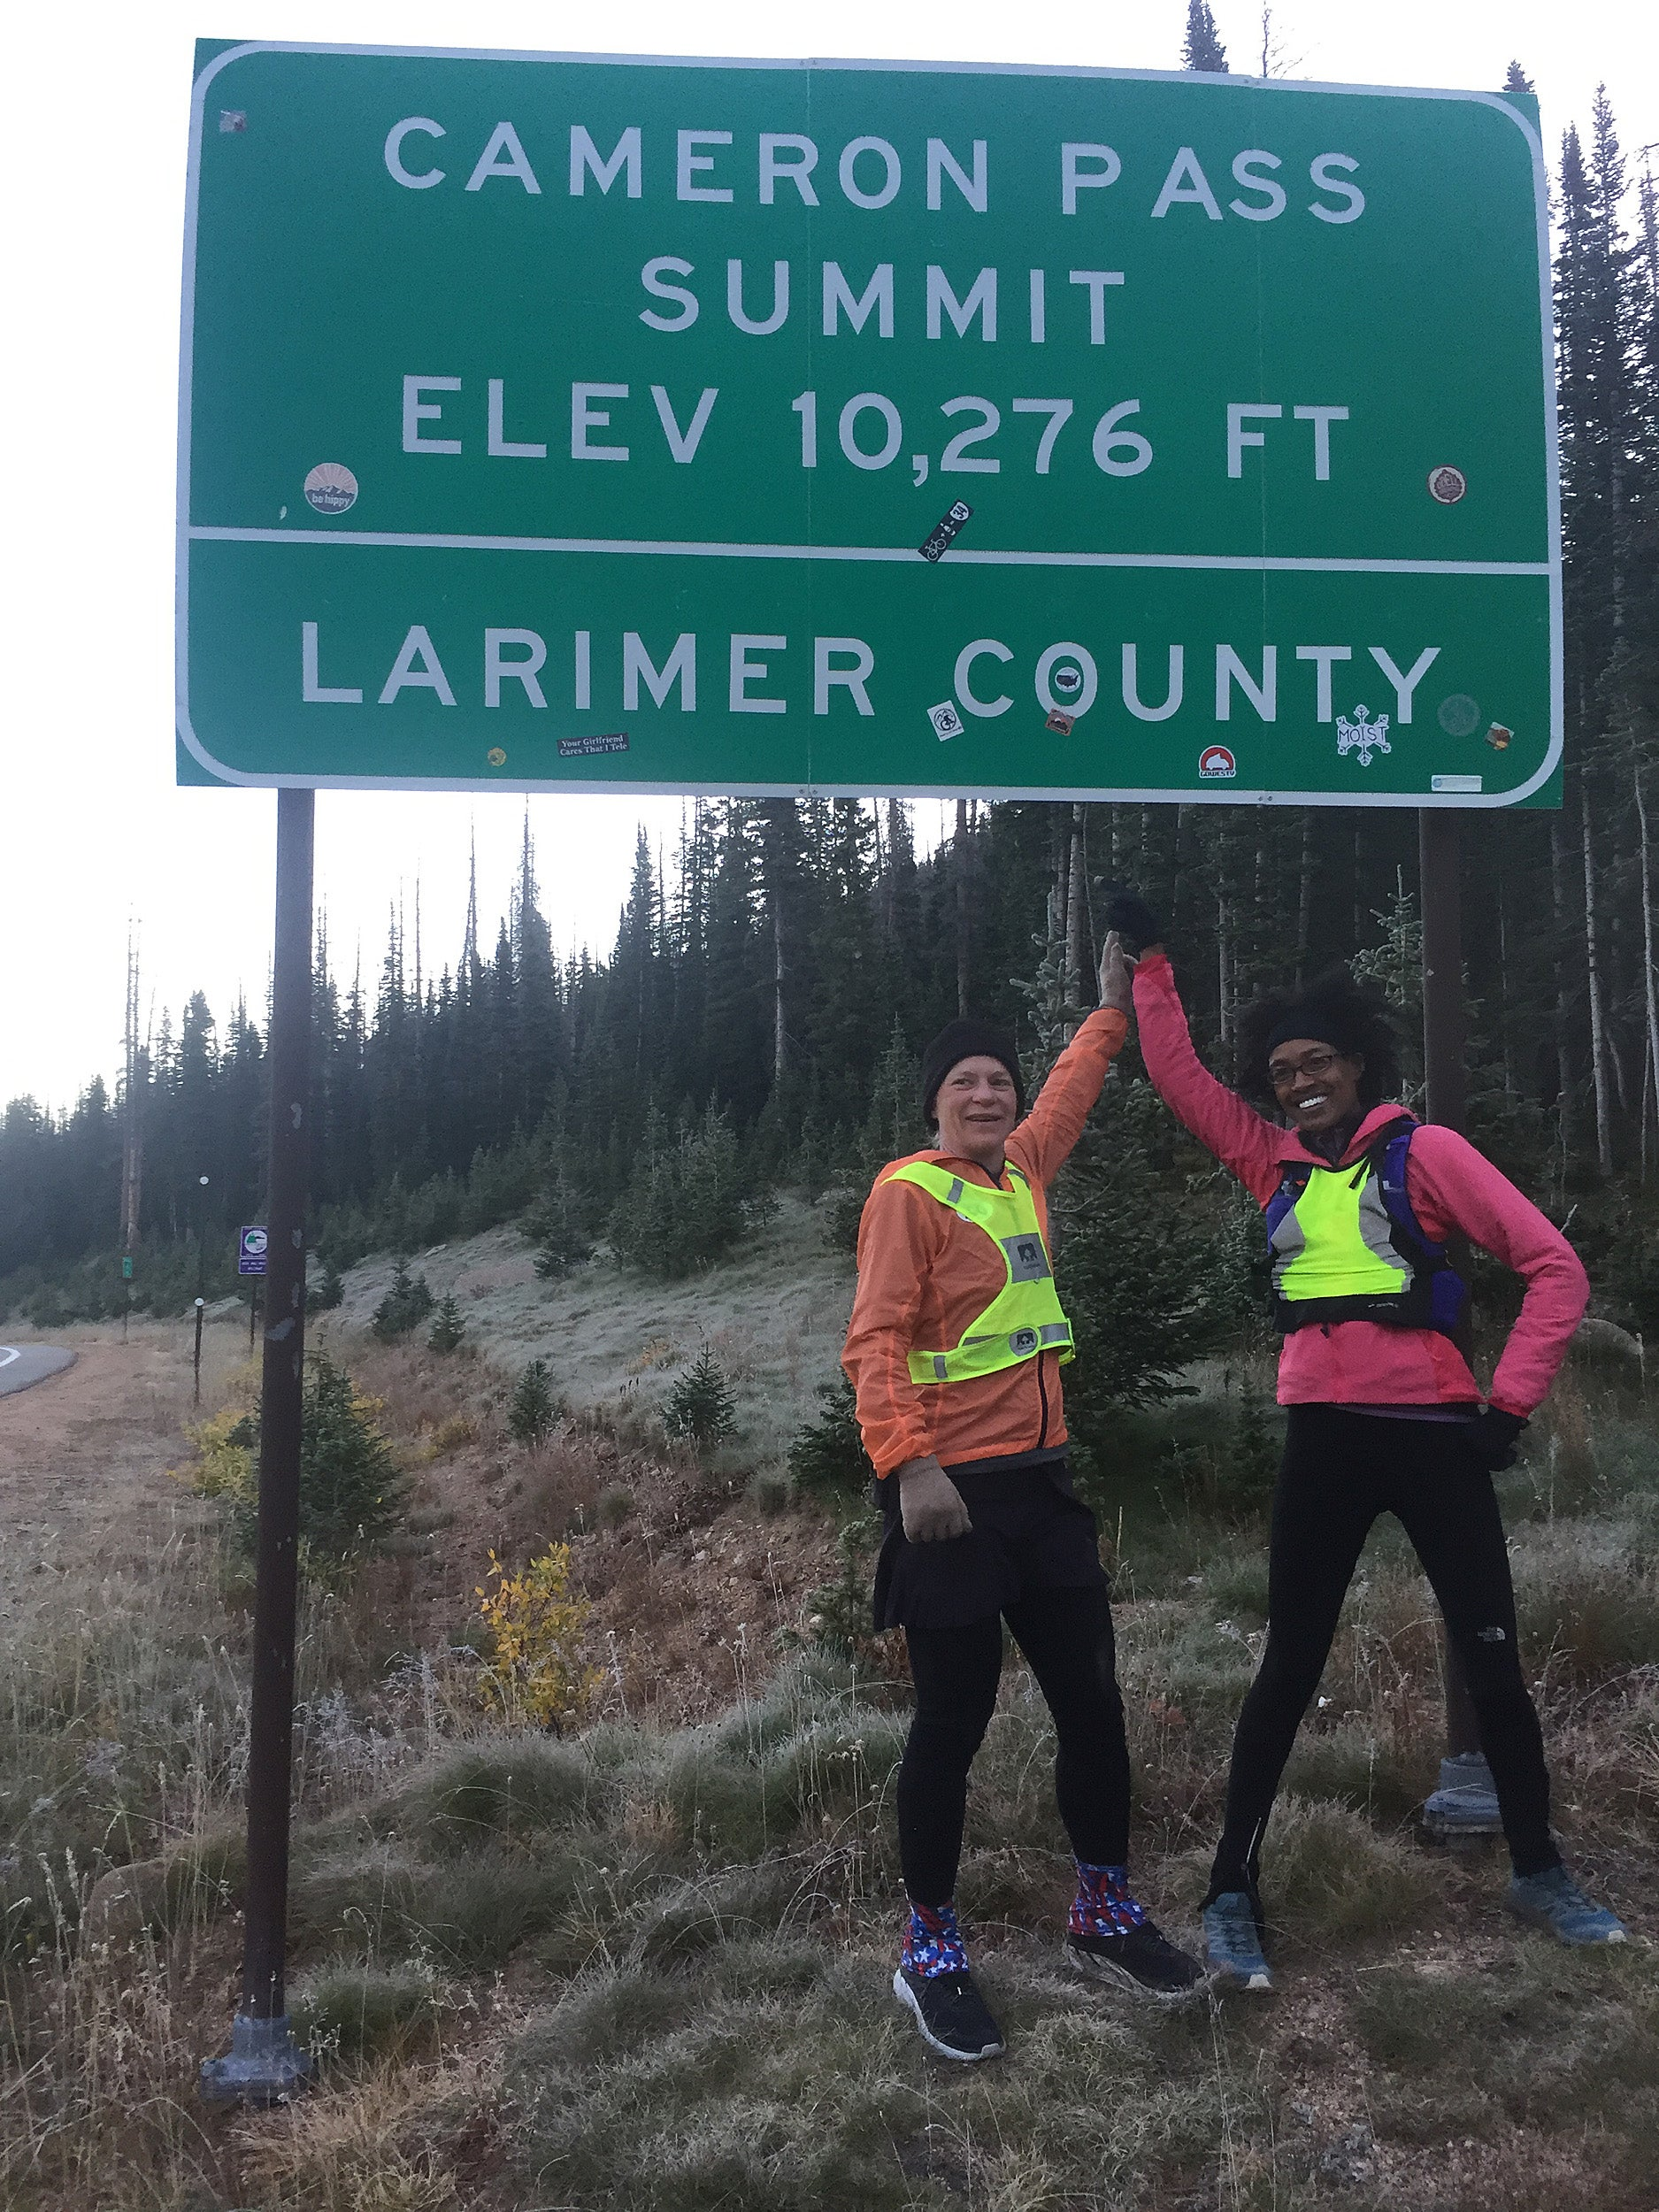 Two women hold hands triumphantly under landmark sign.